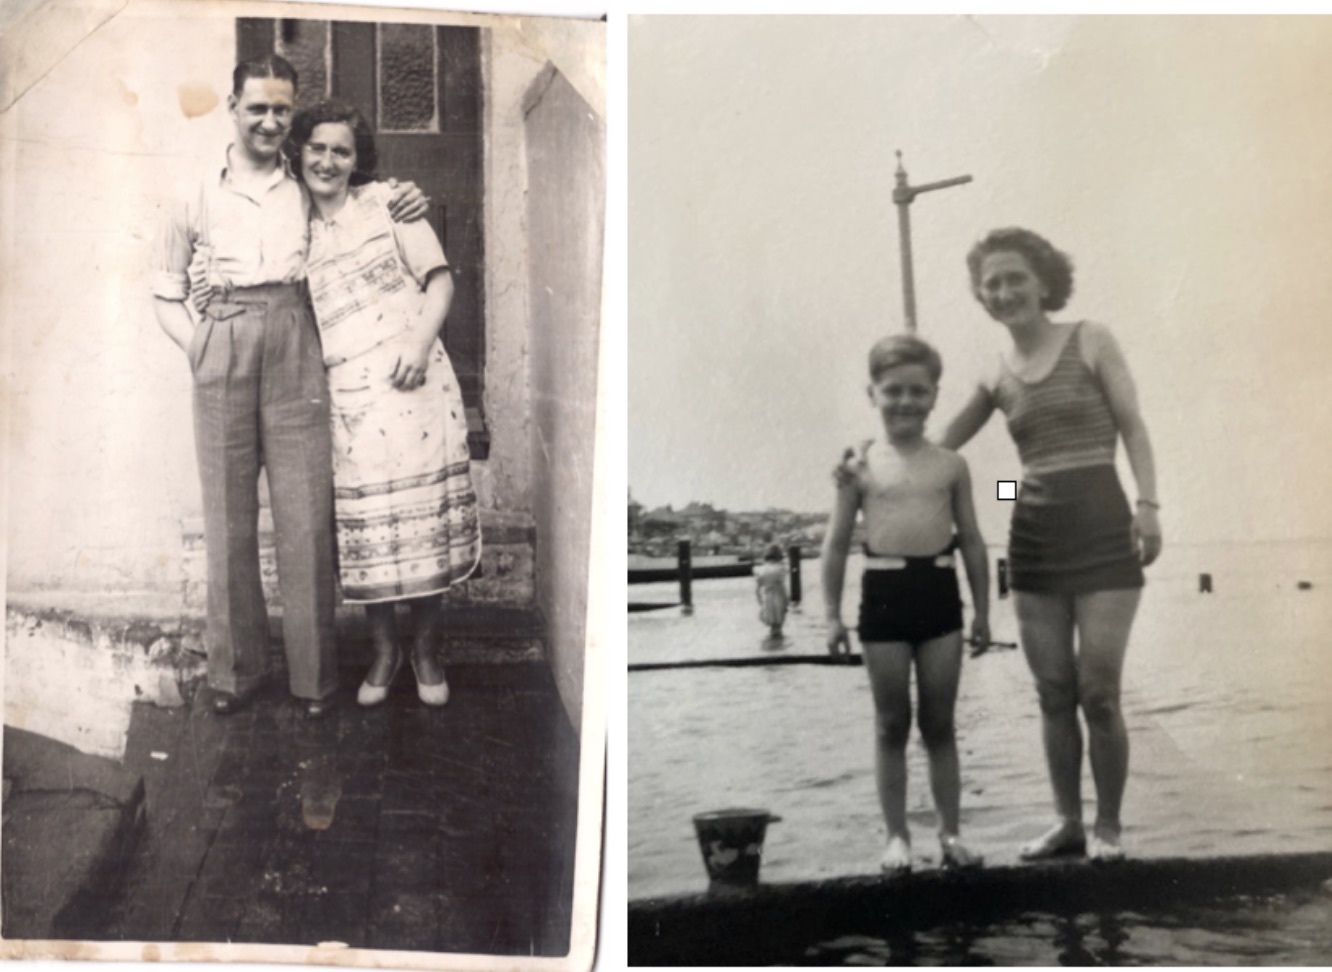 My parents at home in Islington, London in 1942 and Mum and I on the beach in 1949, aged 6.